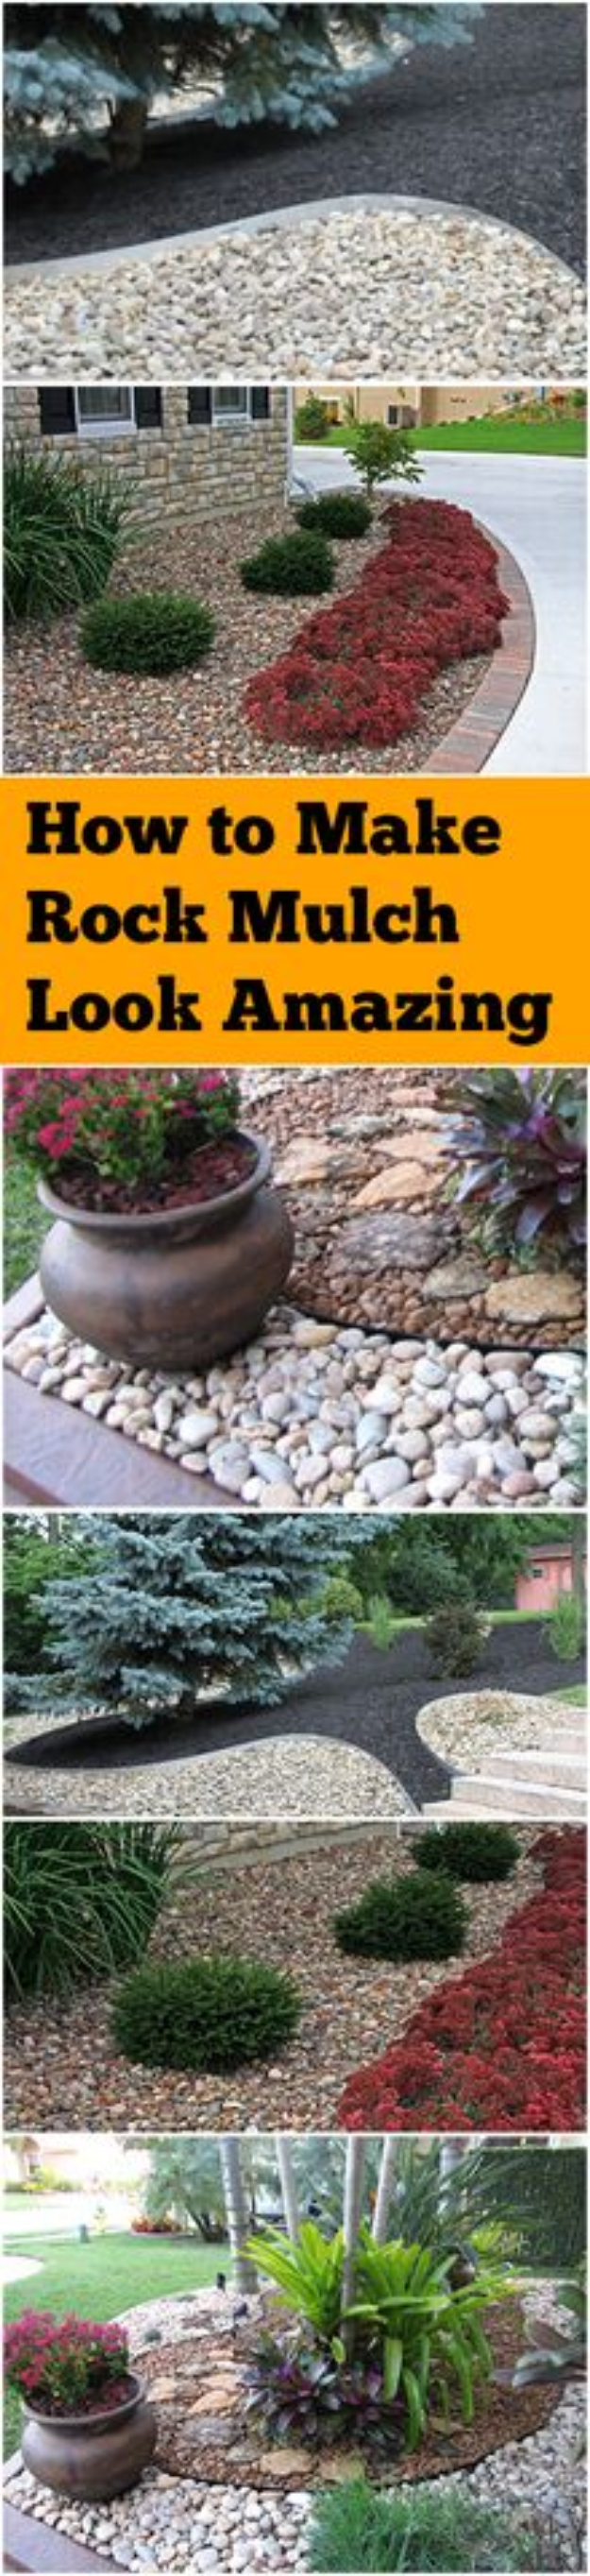 DIY Landscaping Hacks - Make Rock Mulch Look Amazing - Easy Ways to Make Your Yard and Home Look Awesome in Fall, Winter, Spring and Fall. Backyard Projects for Beginning Gardeners and Lawns - Tutorials and Step by Step Instructions